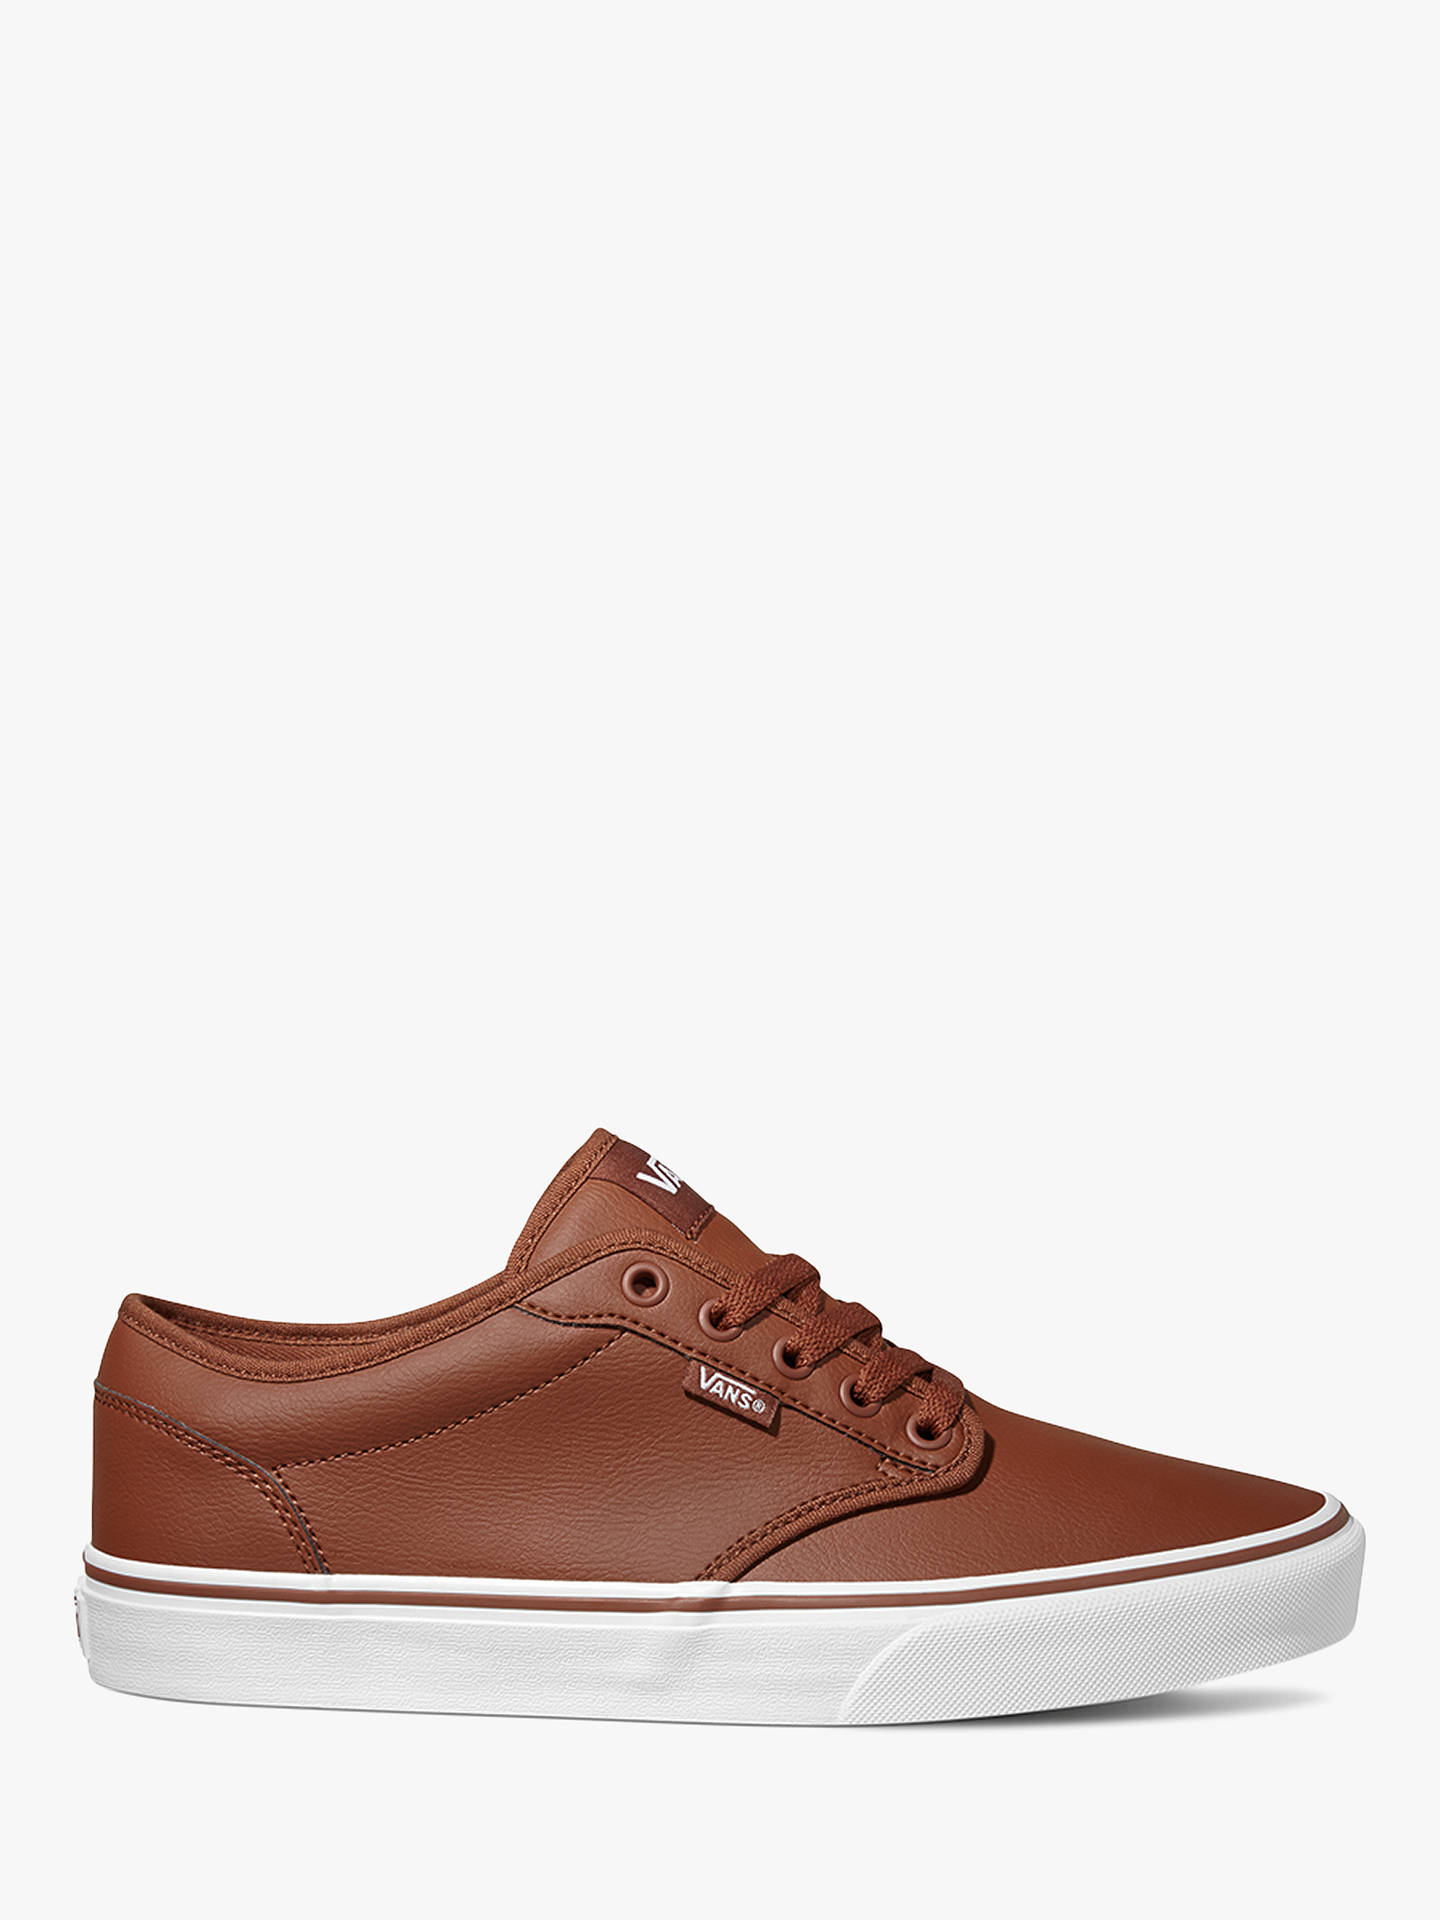 a0ec9b6a55 Vans Atwood Leather Trainers at John Lewis   Partners